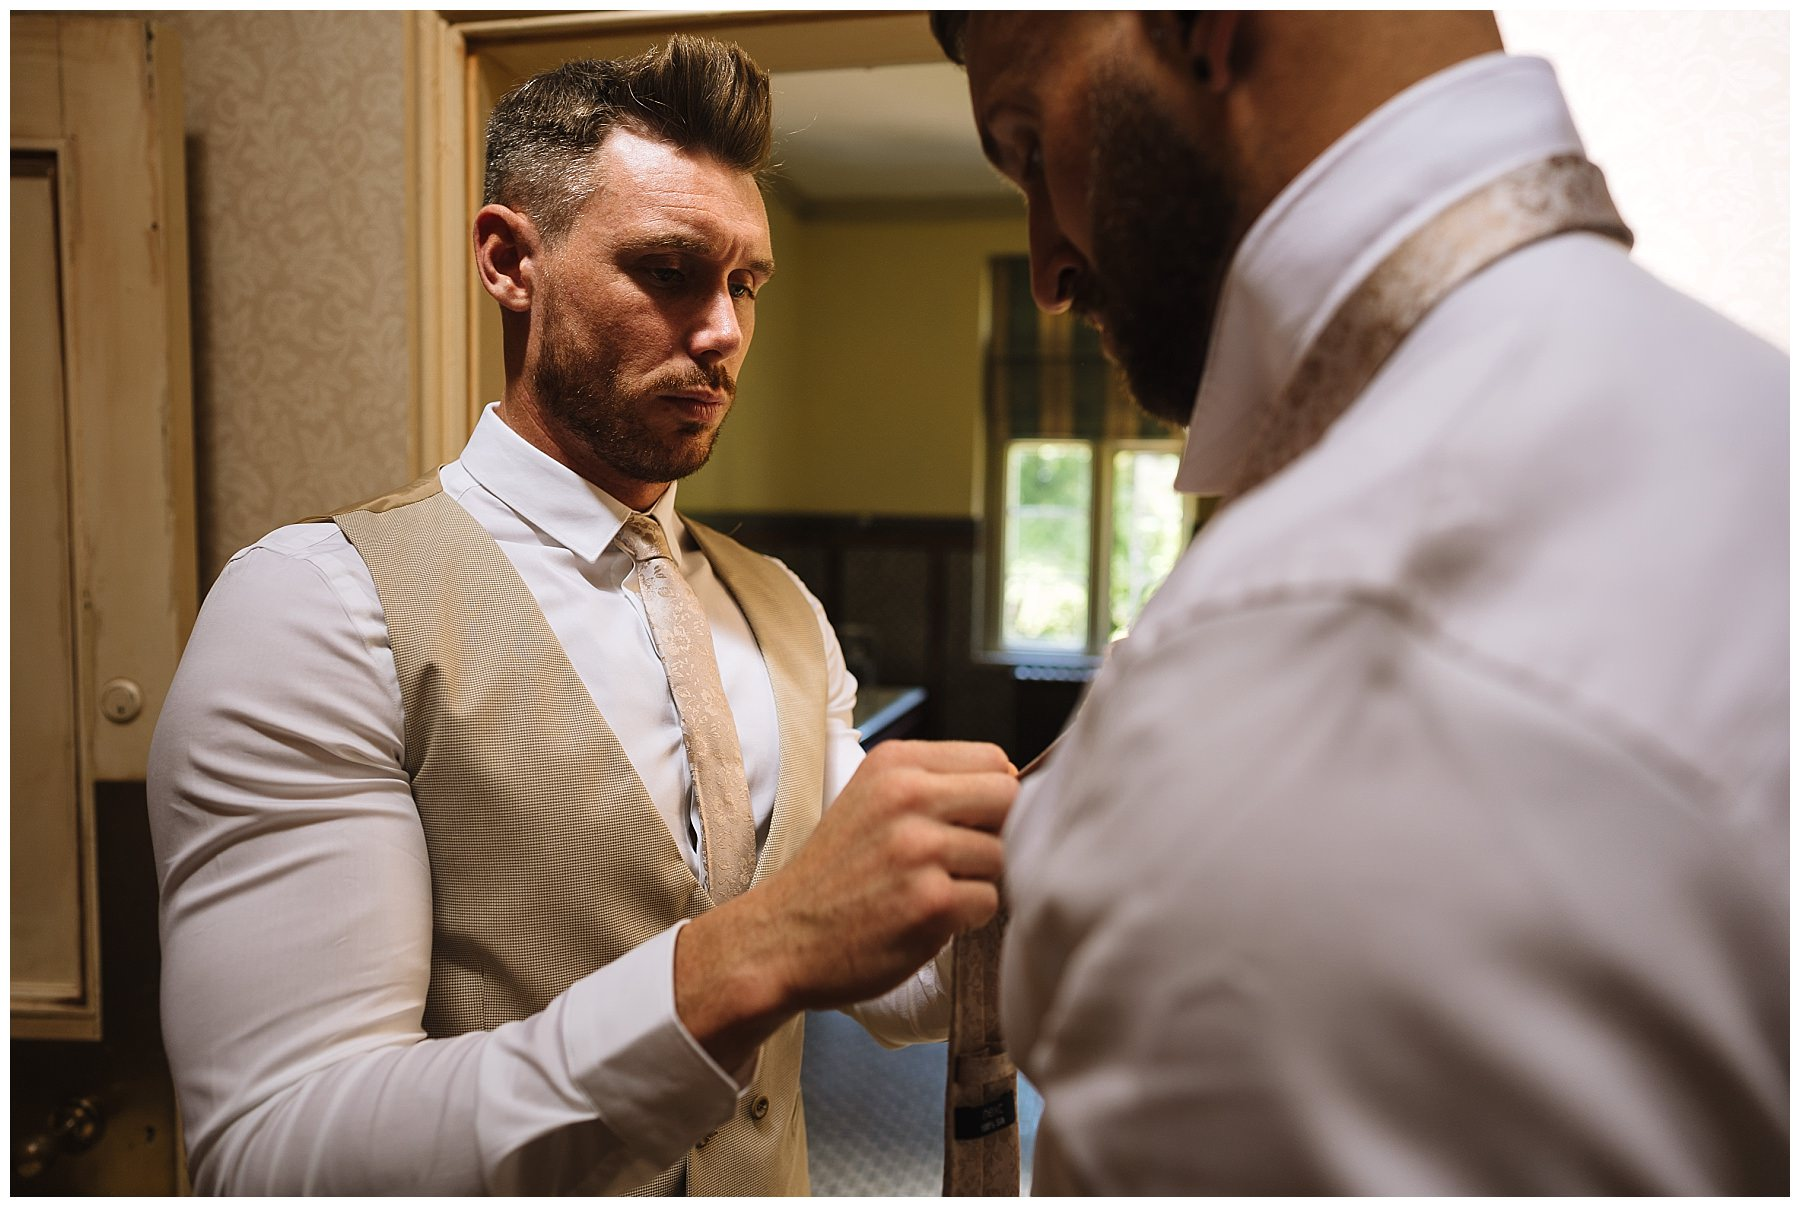 groom helps groomsman fasten his tie